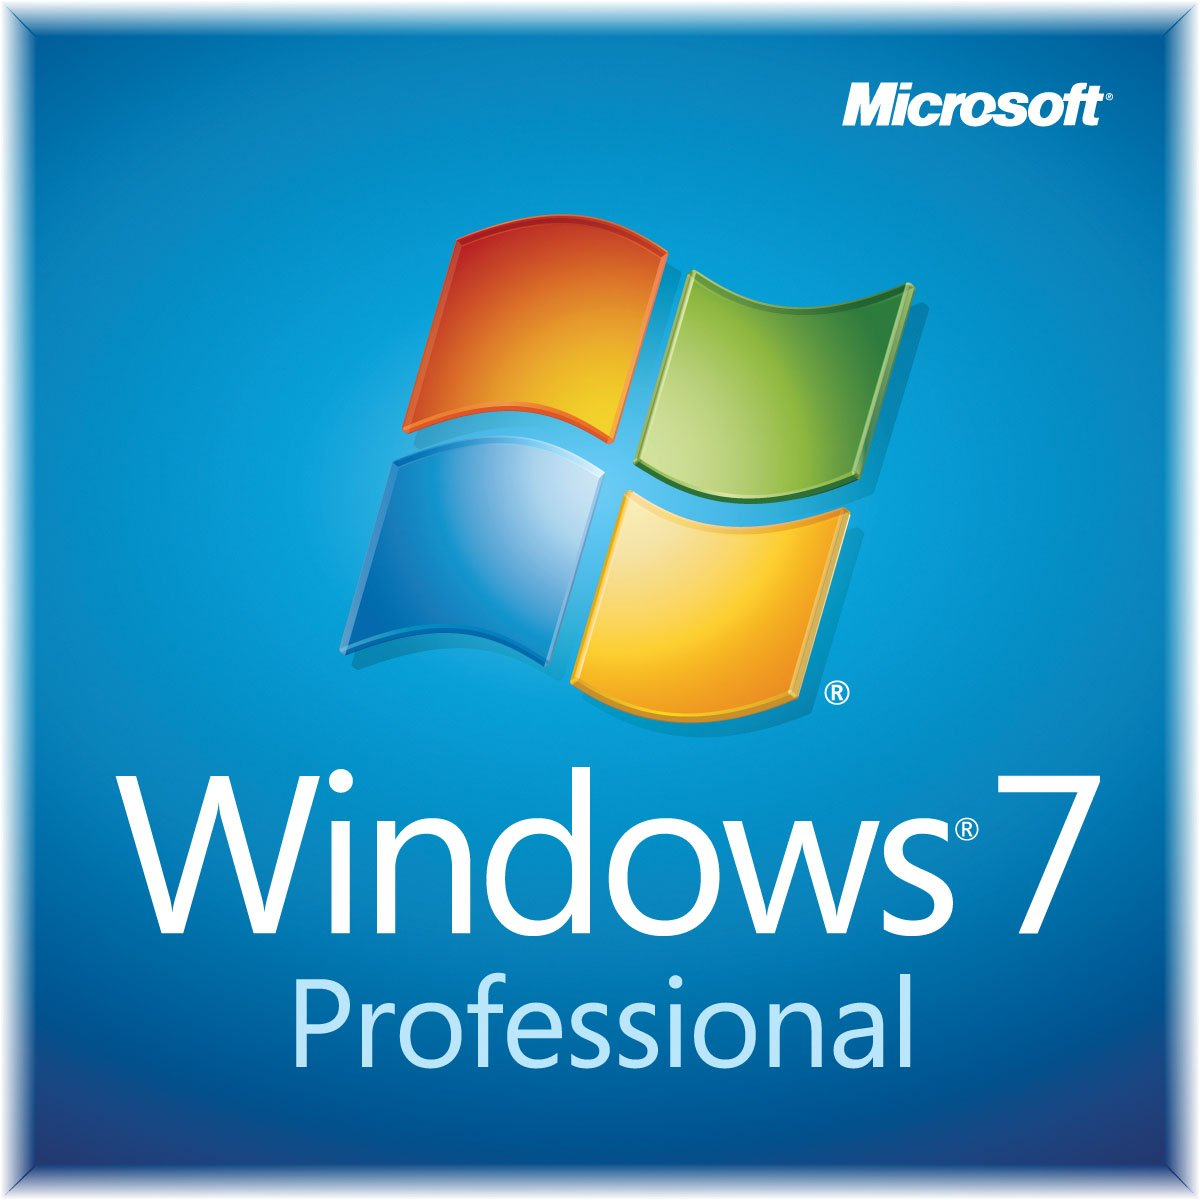 Windows 7 Professional SP1 32bit (Full) System Builder OEM DVD 1 Pack [Old Packaging] by Microsoft